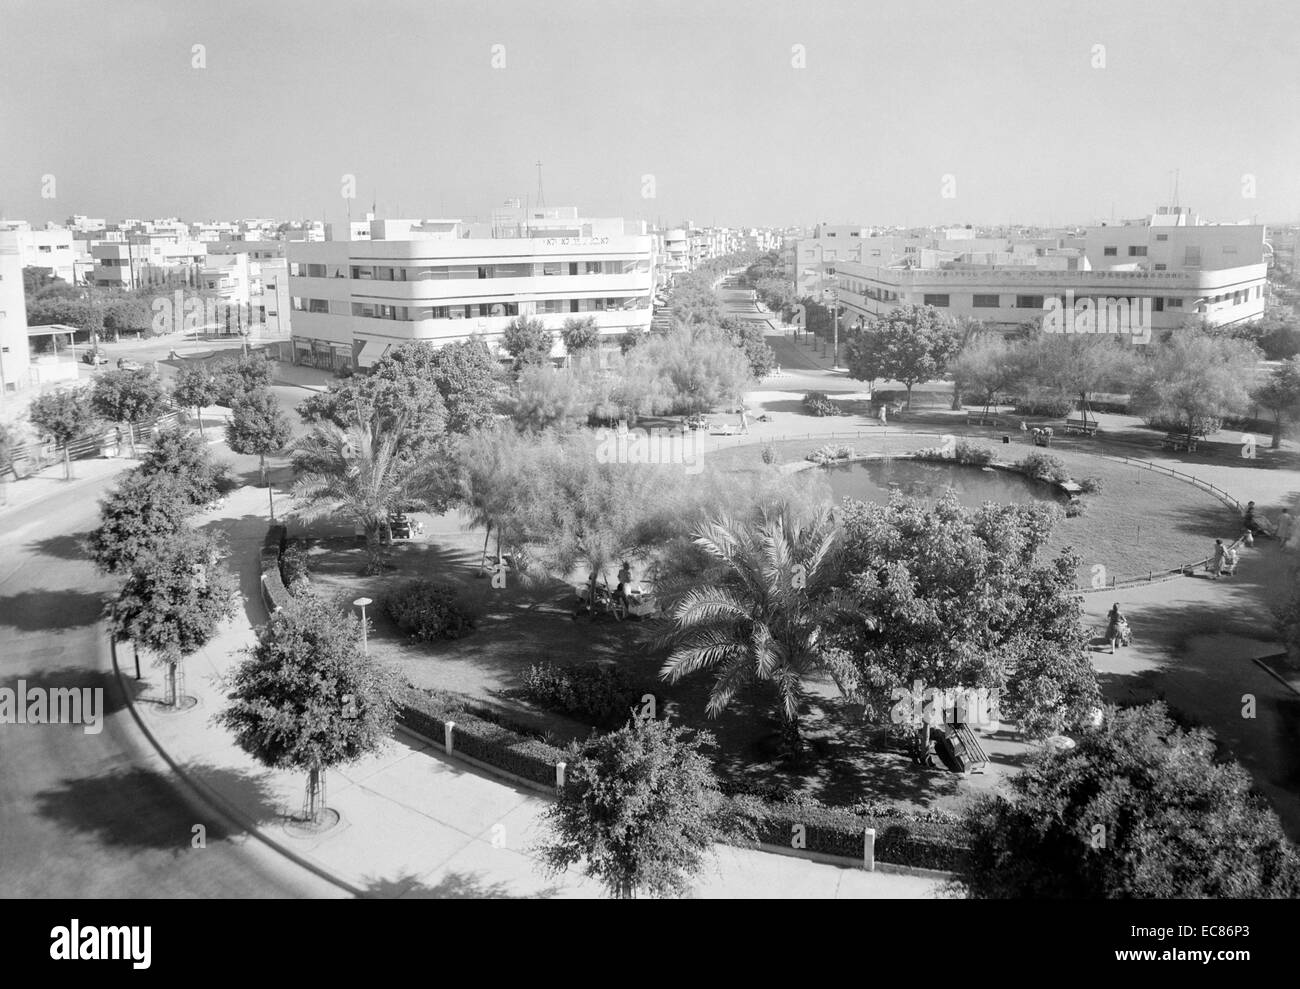 Photograph of Dizengoff Square, Tel Aviv. Dated 1946 - Stock Image